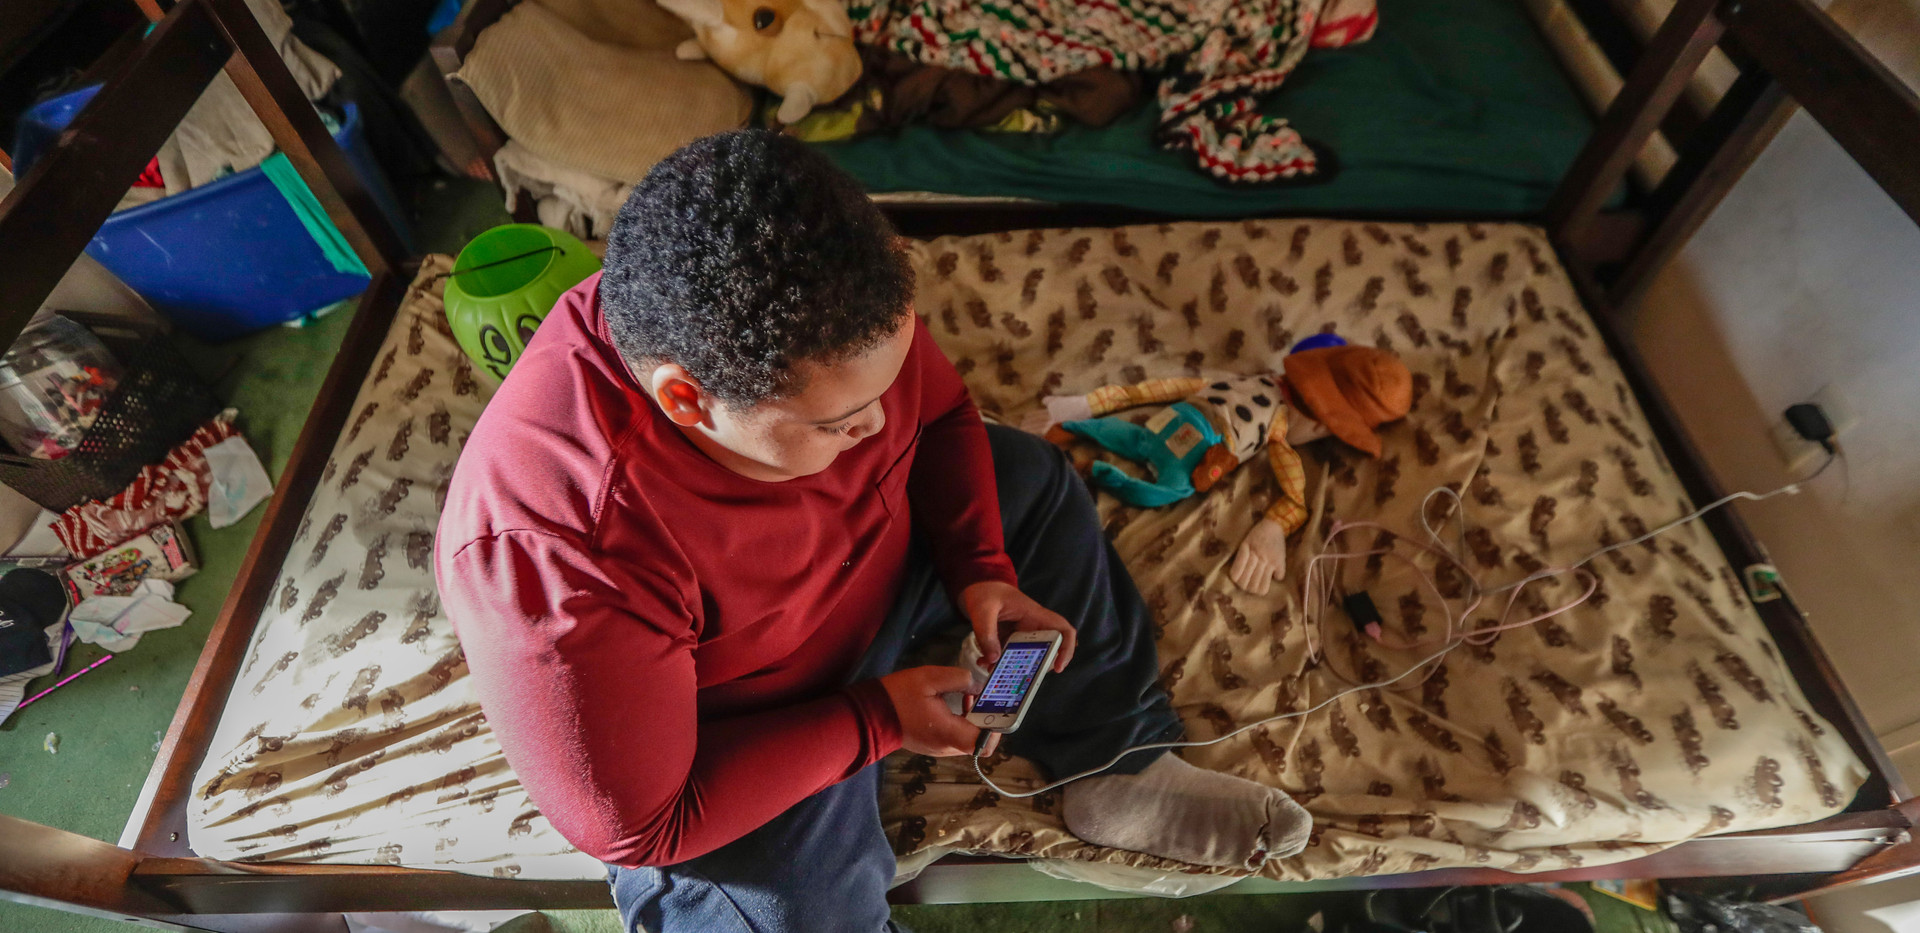 Brandon Hughes, 11, plays games on his phone in his bedroom that he shares with his 9-year-old sister. Brandon and his sister share a trailer with their parents located off of Aenon Church Road.